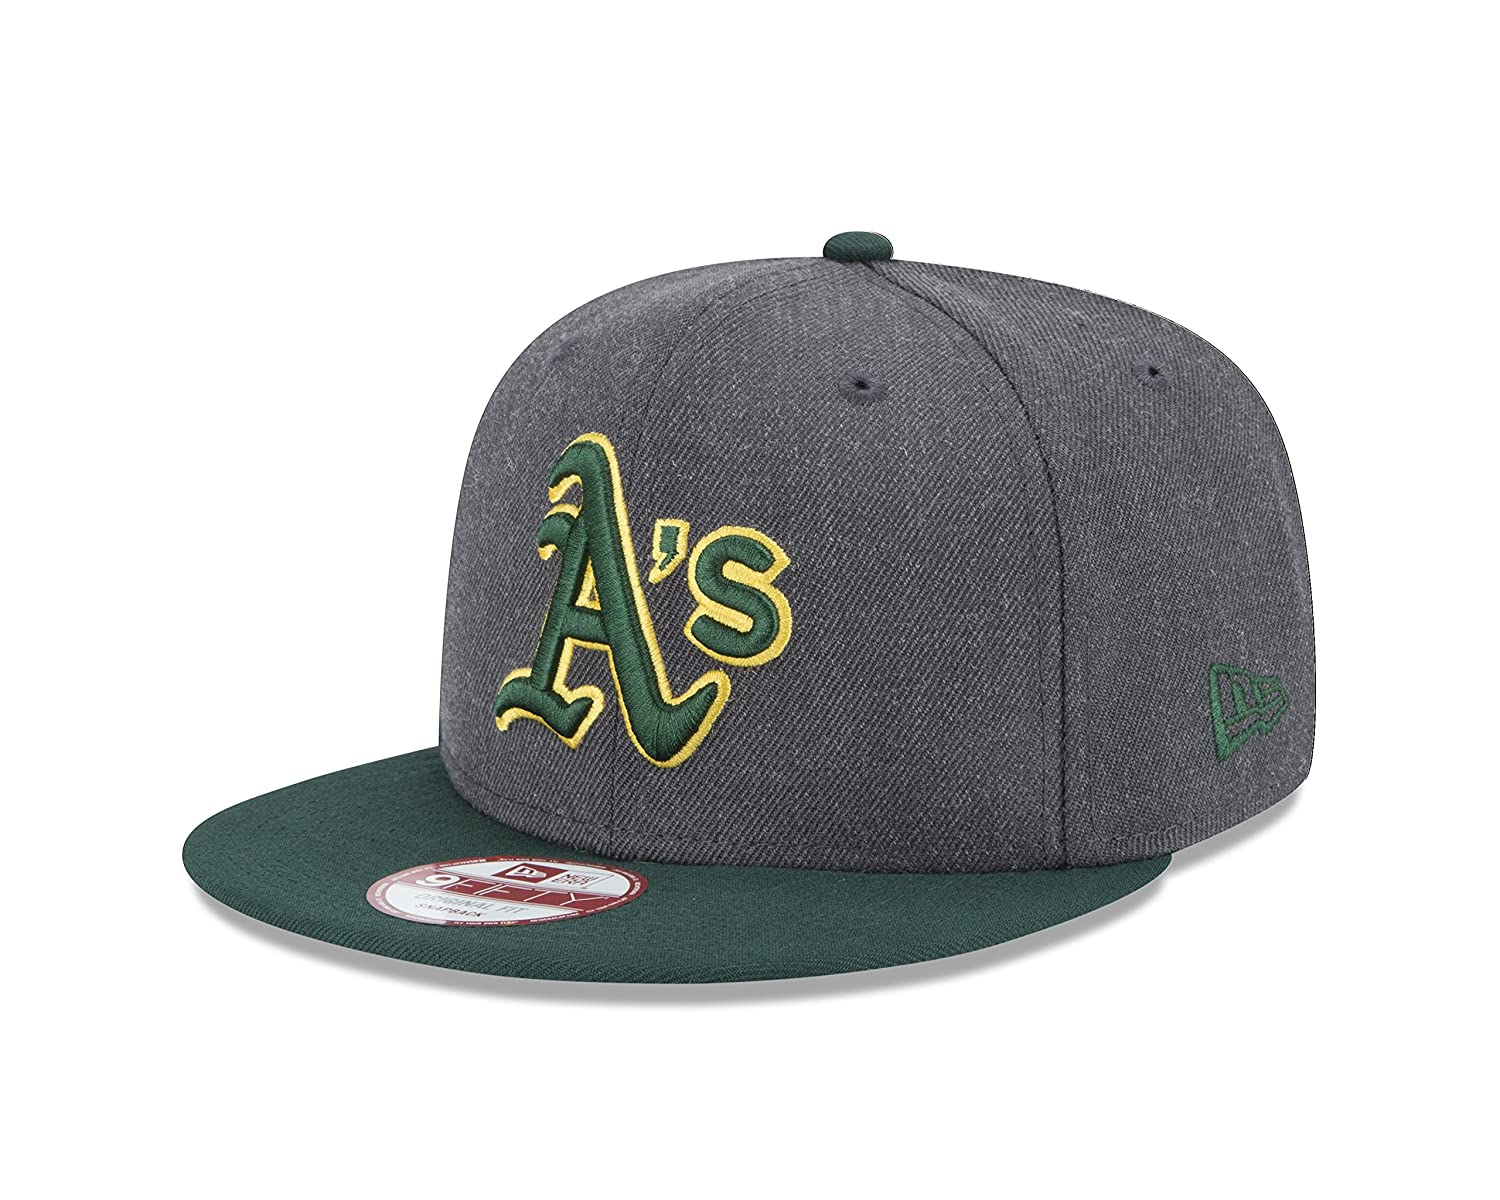 new product 63a07 0f07a Amazon.com   New Era Men s Atlanta Braves, Graphite, One Size   Clothing